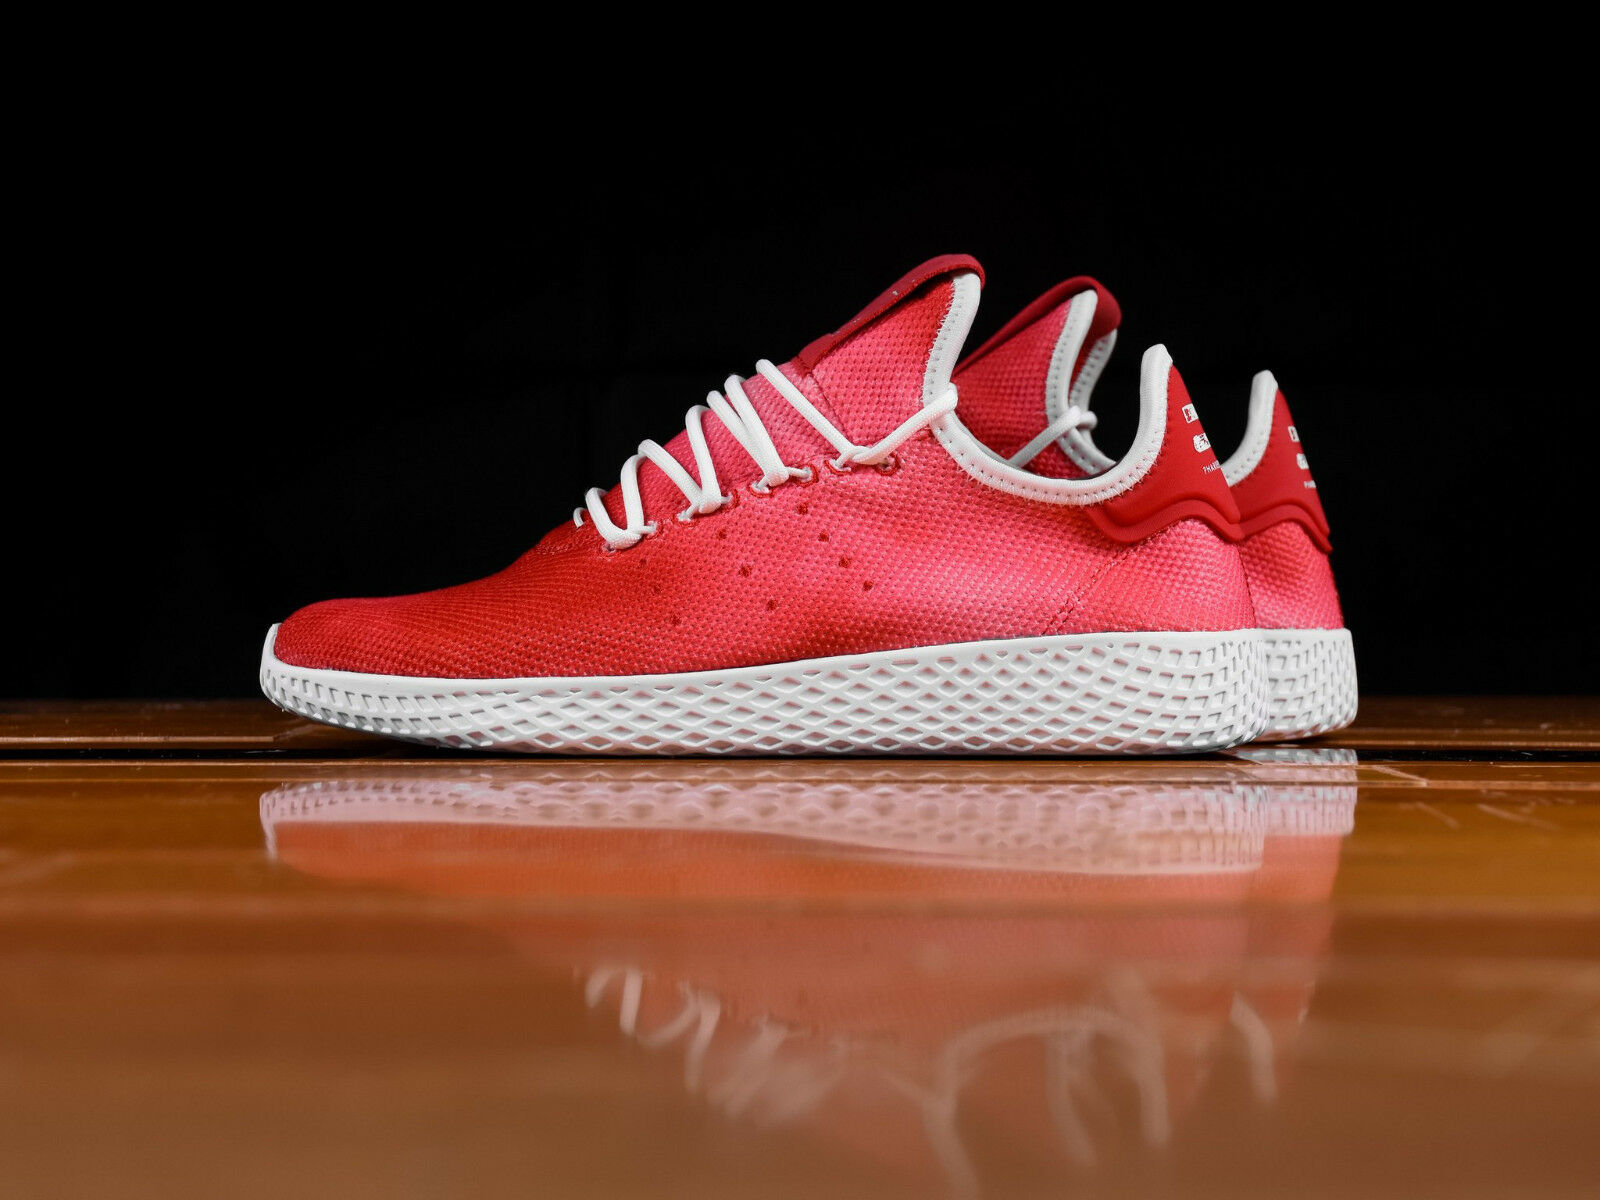 Adidas ADIDAS ORIGINALS PW TENNIS HU DA9615 Scarlet White Pharrell Williams c1